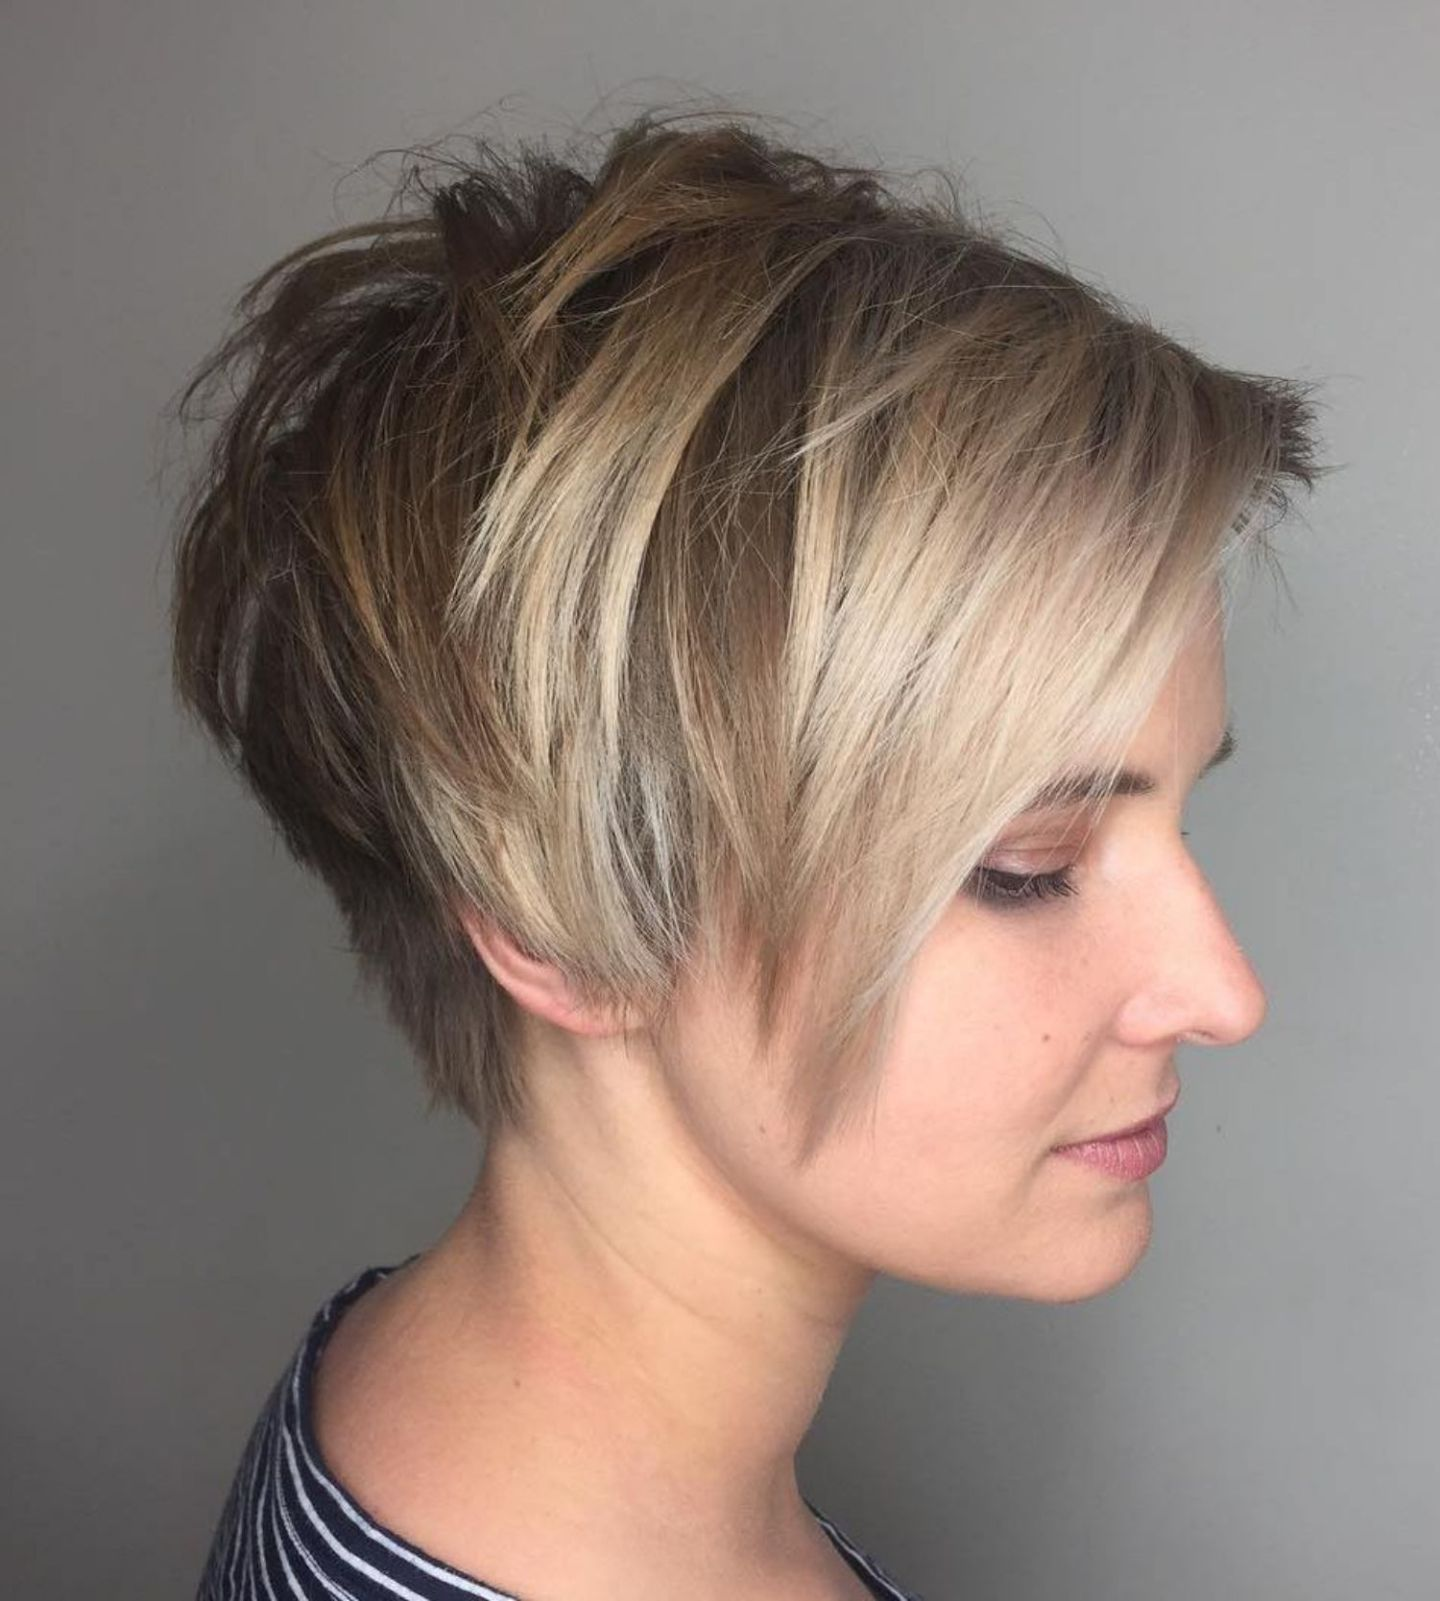 Short Tapered Neckline With Coverage And Texture Short Hair Back Short Hair Styles Pixie